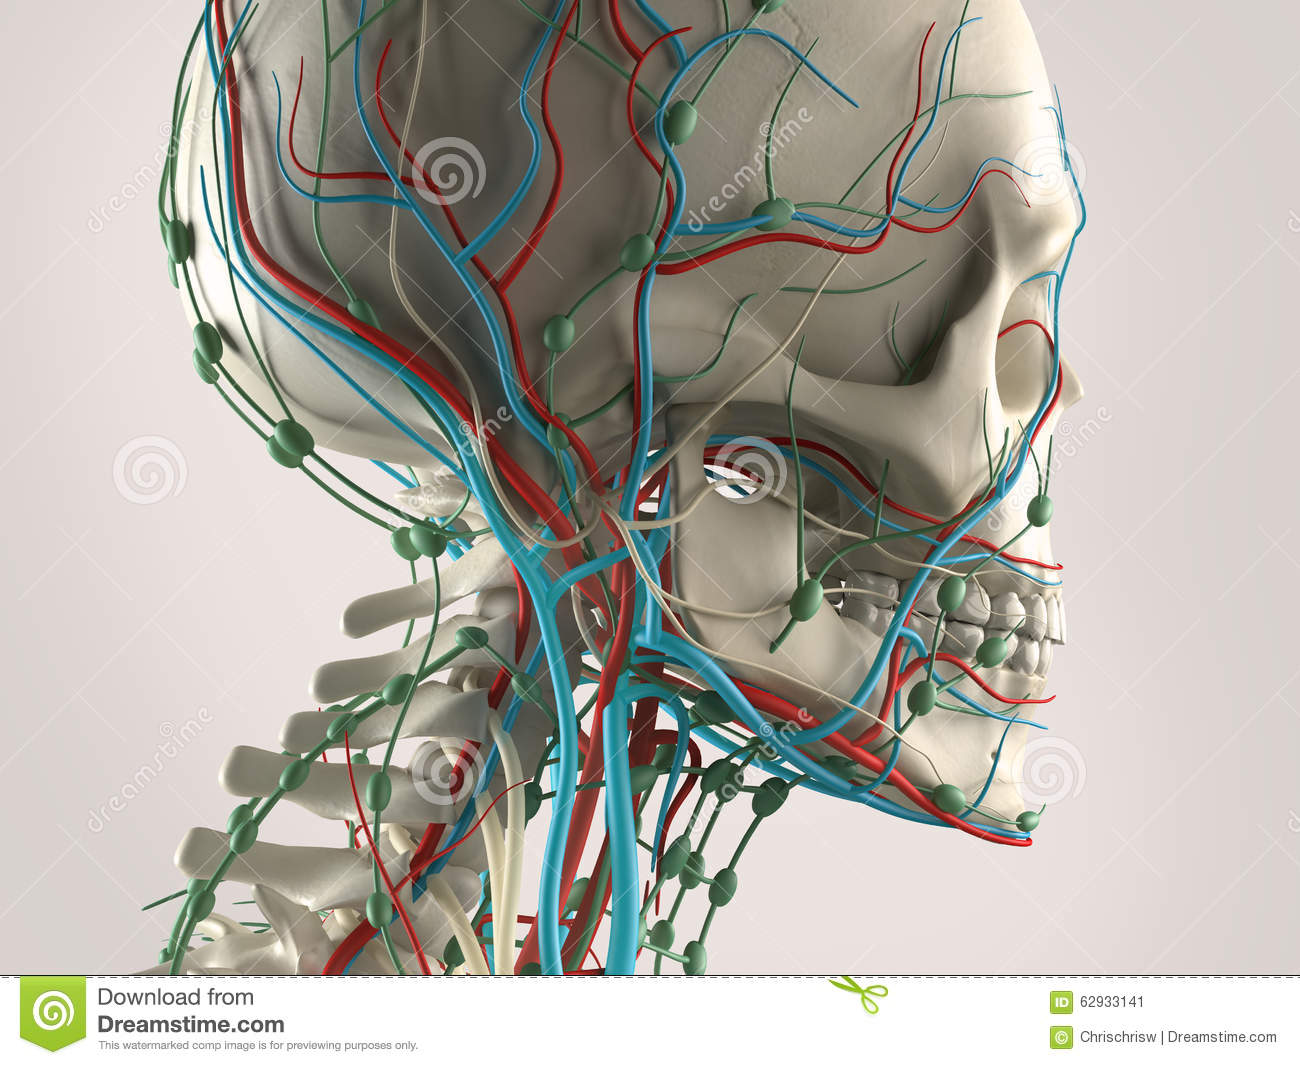 A human anatomy with a view of head, showing the skeleton and vascular system.